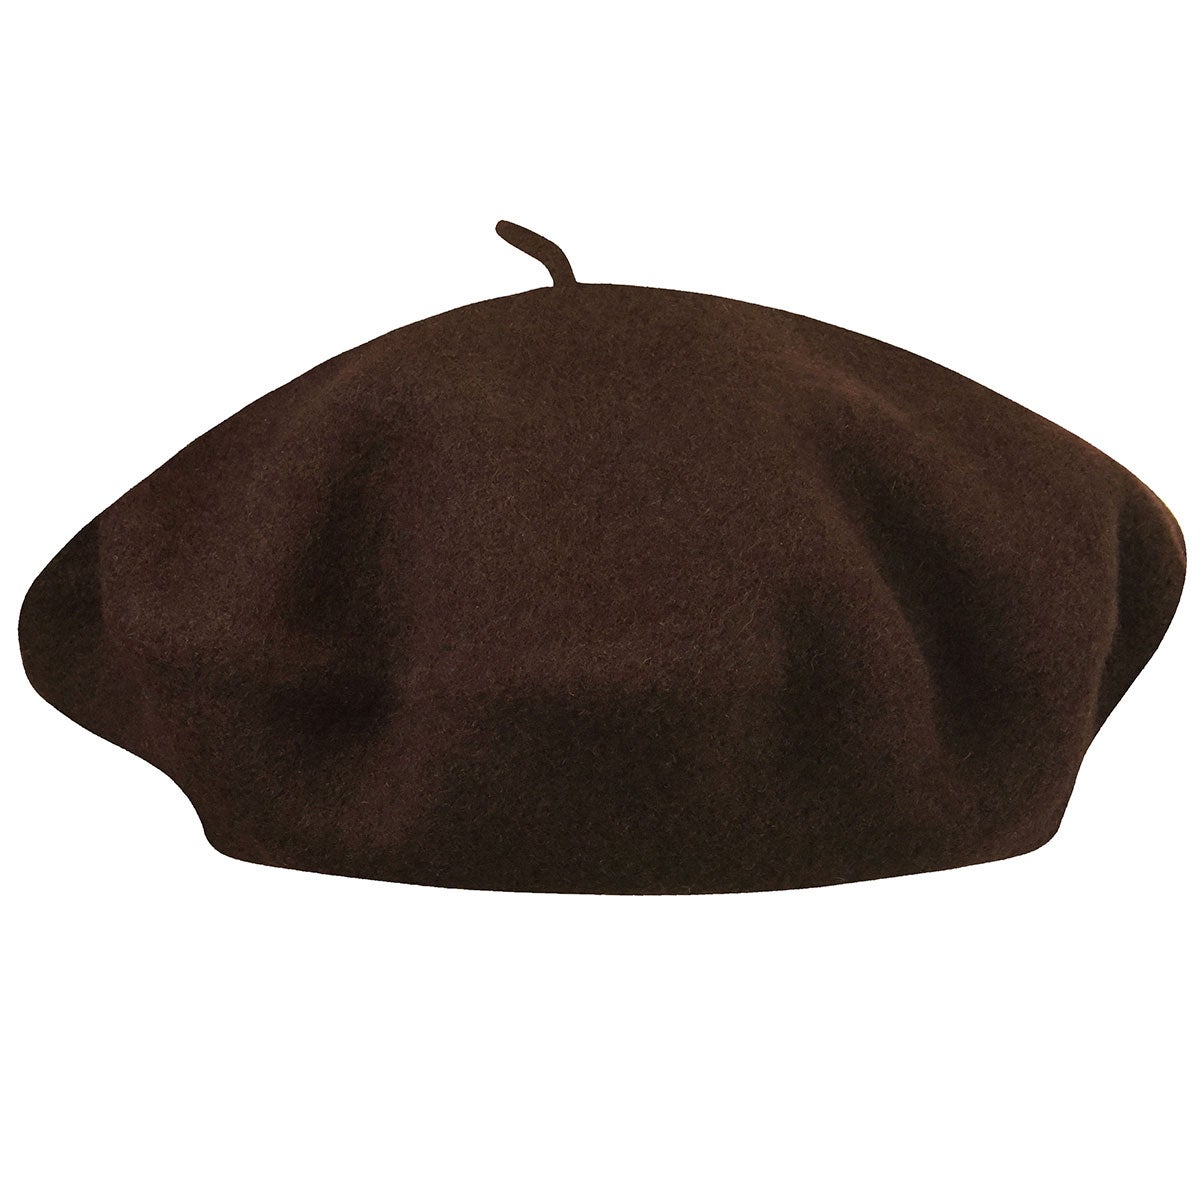 Betmar French Beret in Chocolate